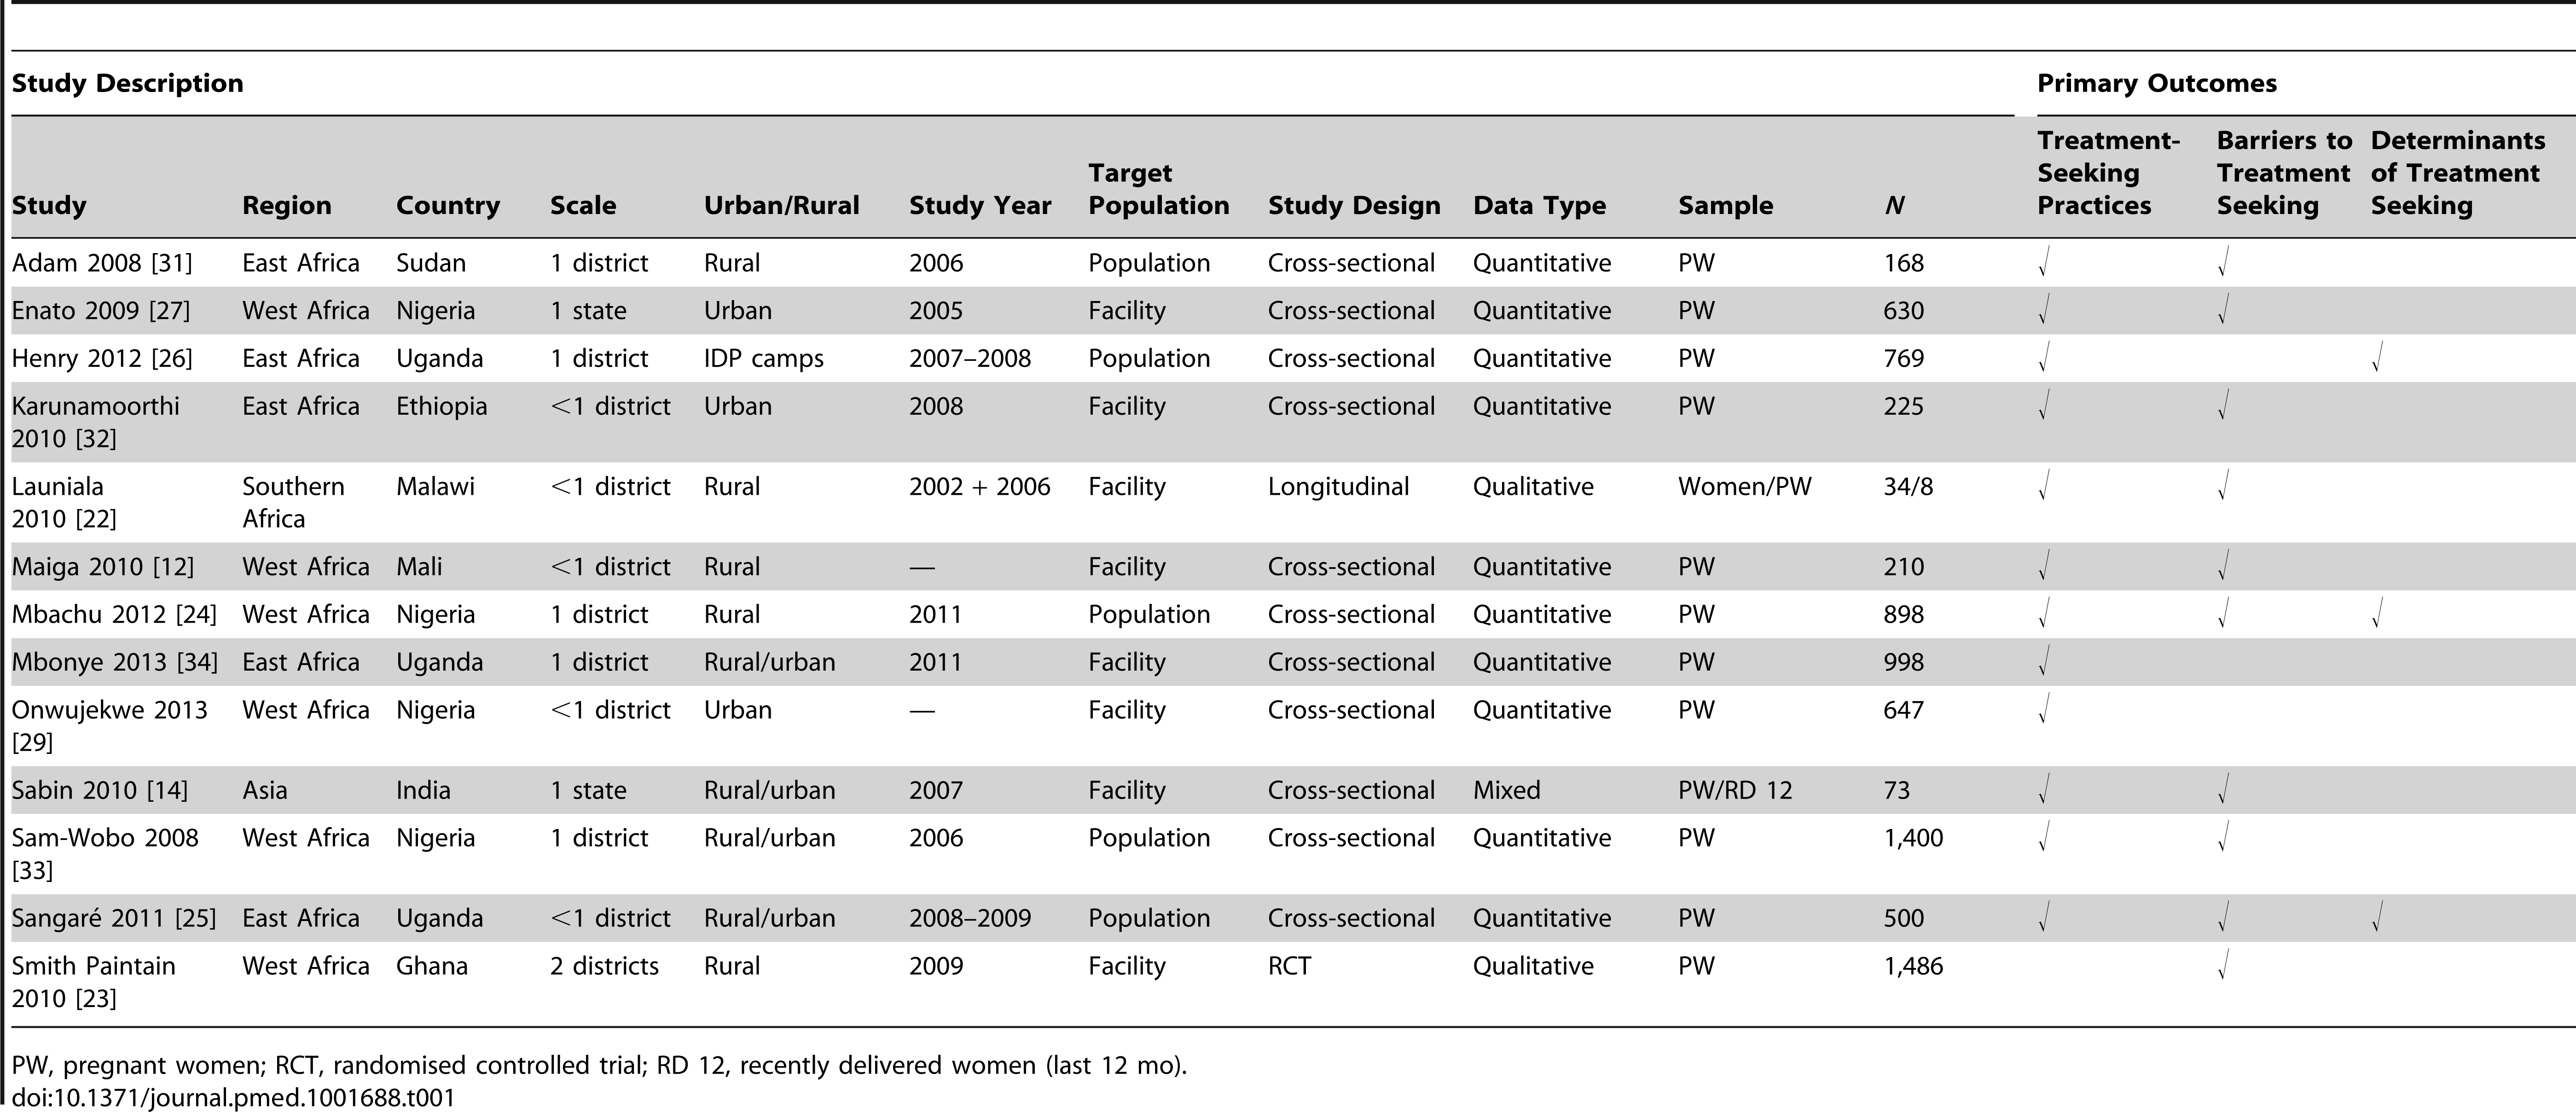 Characteristics of studies reporting outcomes, barriers, and determinants for treatment-seeking practices among pregnant women (13 studies).